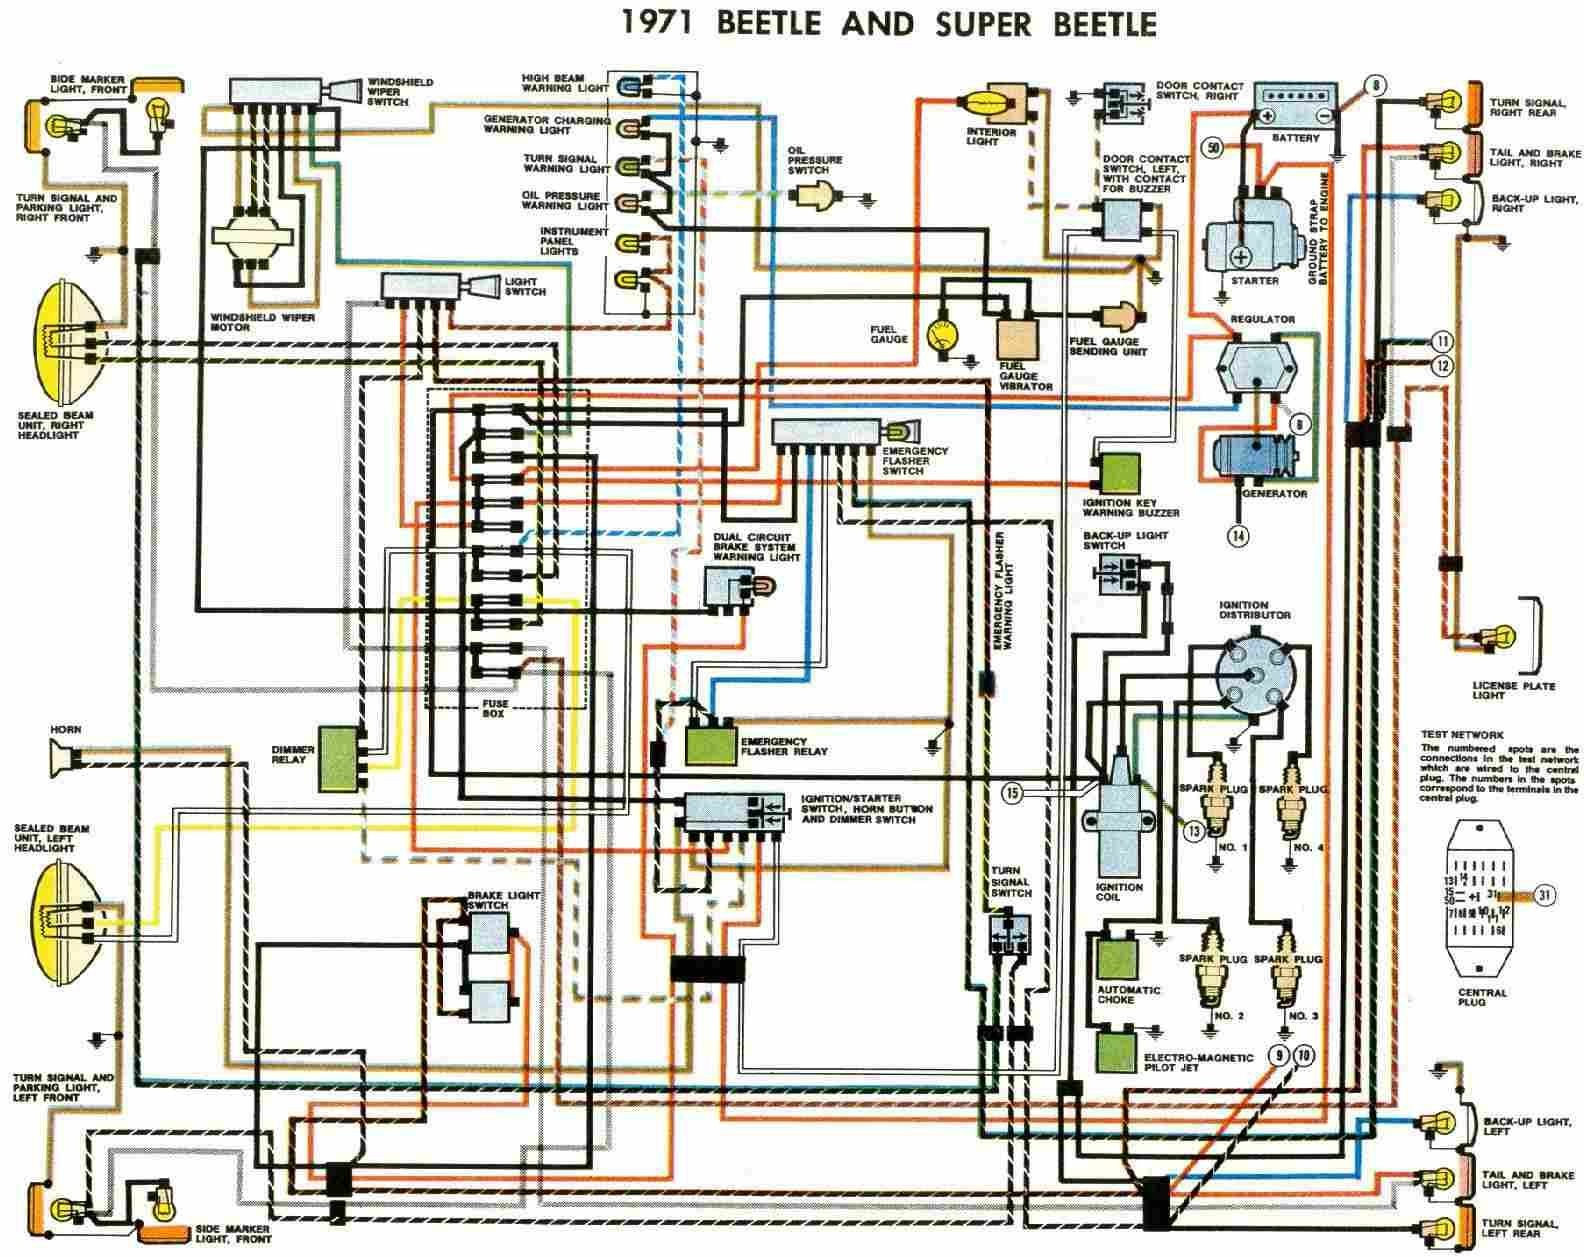 hight resolution of vw electrical schematics data wiring diagram 2000 beetle wiring schematic wiring diagram paper vw electrical schematics